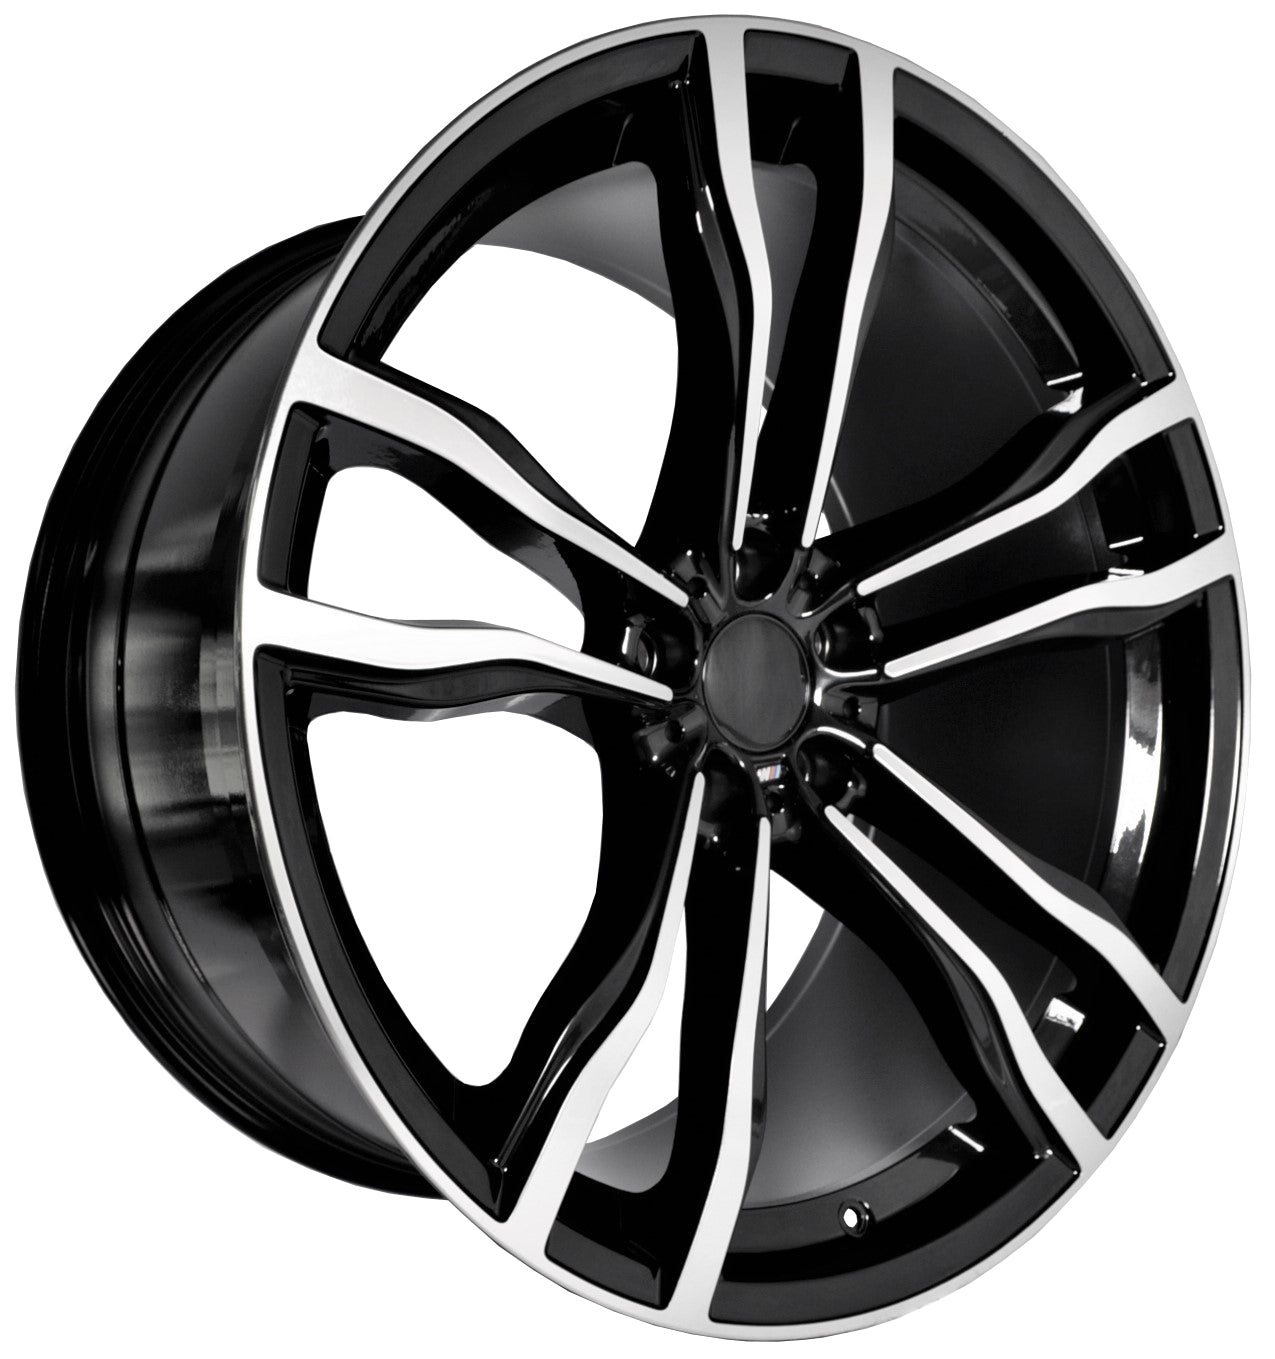 Full Set Of 4 22 Inch Black Staggered Wheels Rims Fit For Bmw X5 X5m E53 E70 F15 X6 X6m E71 F16 5623 Bm Wheels Car